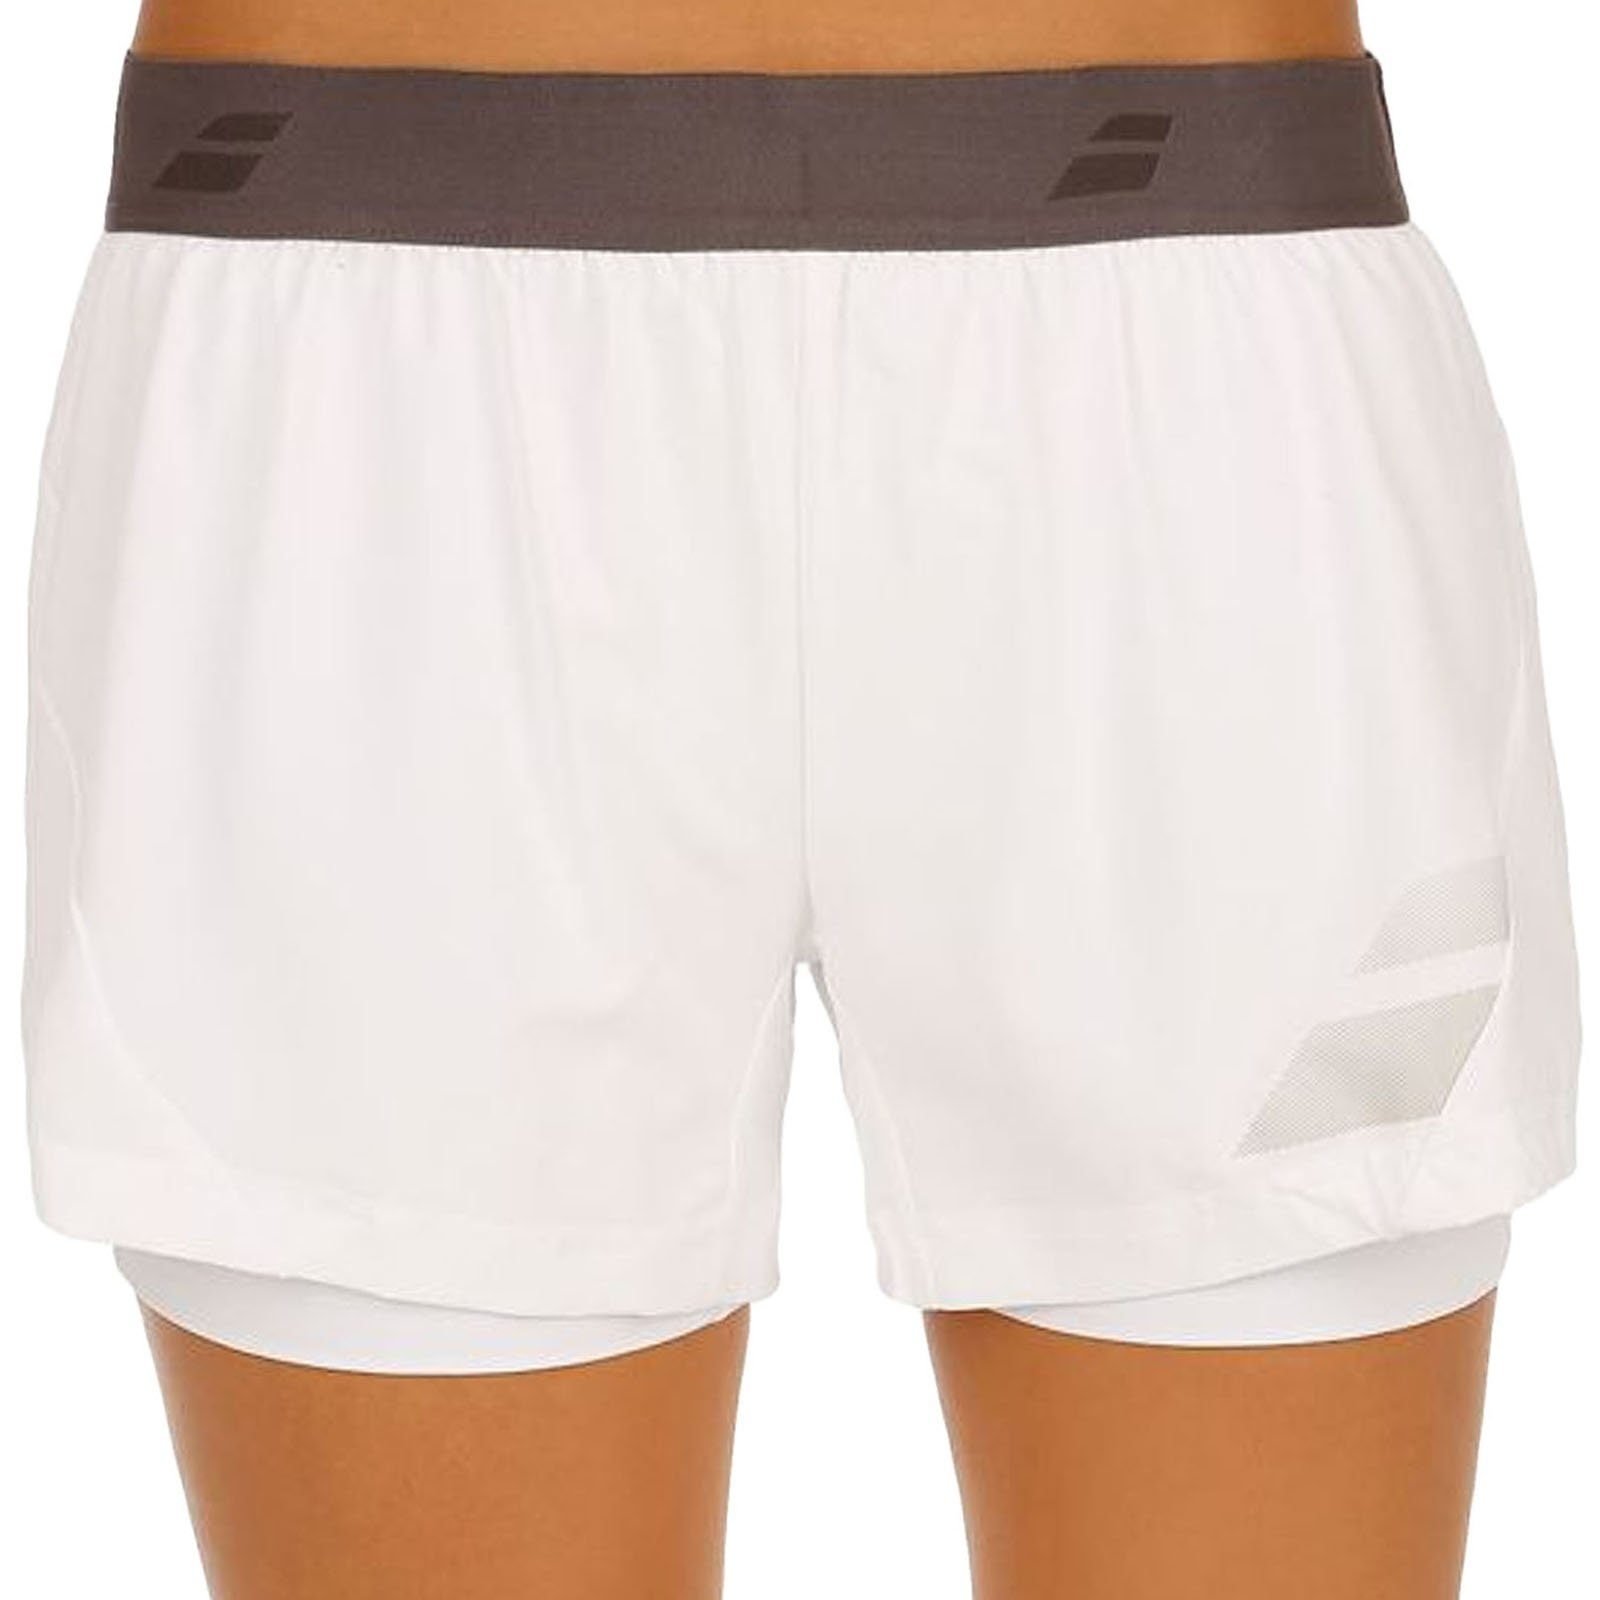 Babolat Womens Core Performance Tennis Dual Layer Shorts - Whi - S